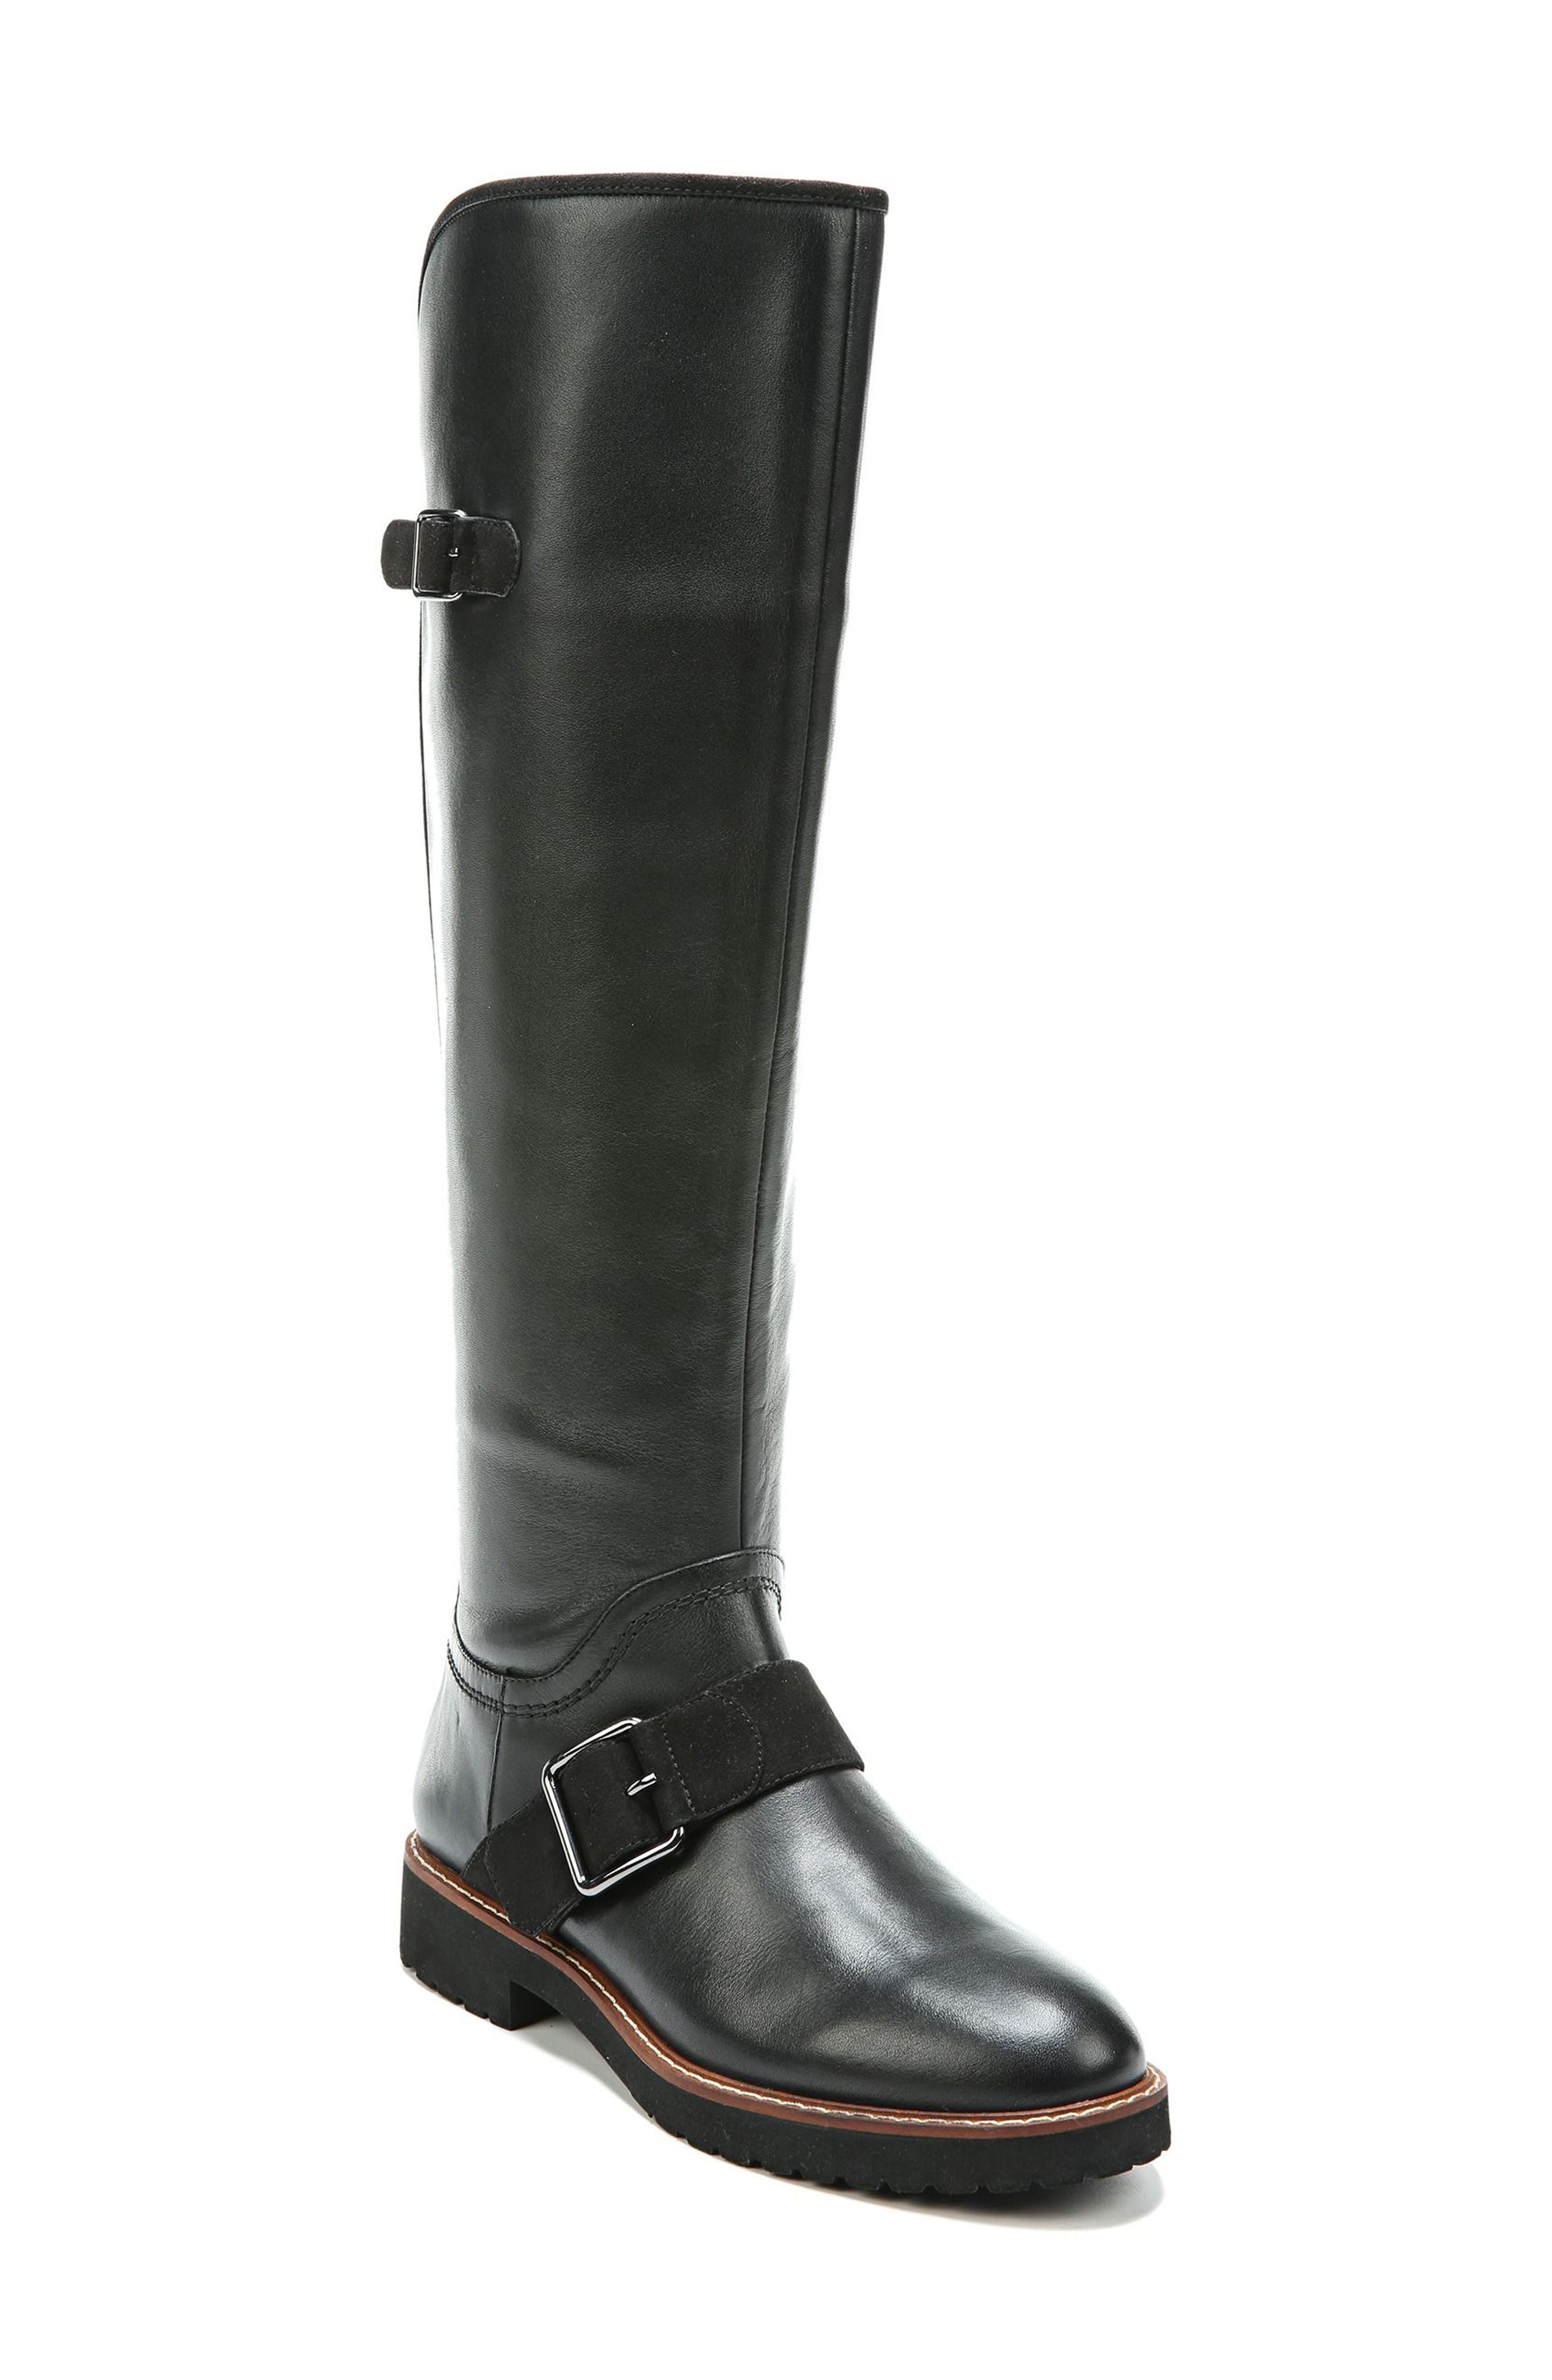 Cutler Riding Boot,                             Main thumbnail 1, color,                             Black Leather